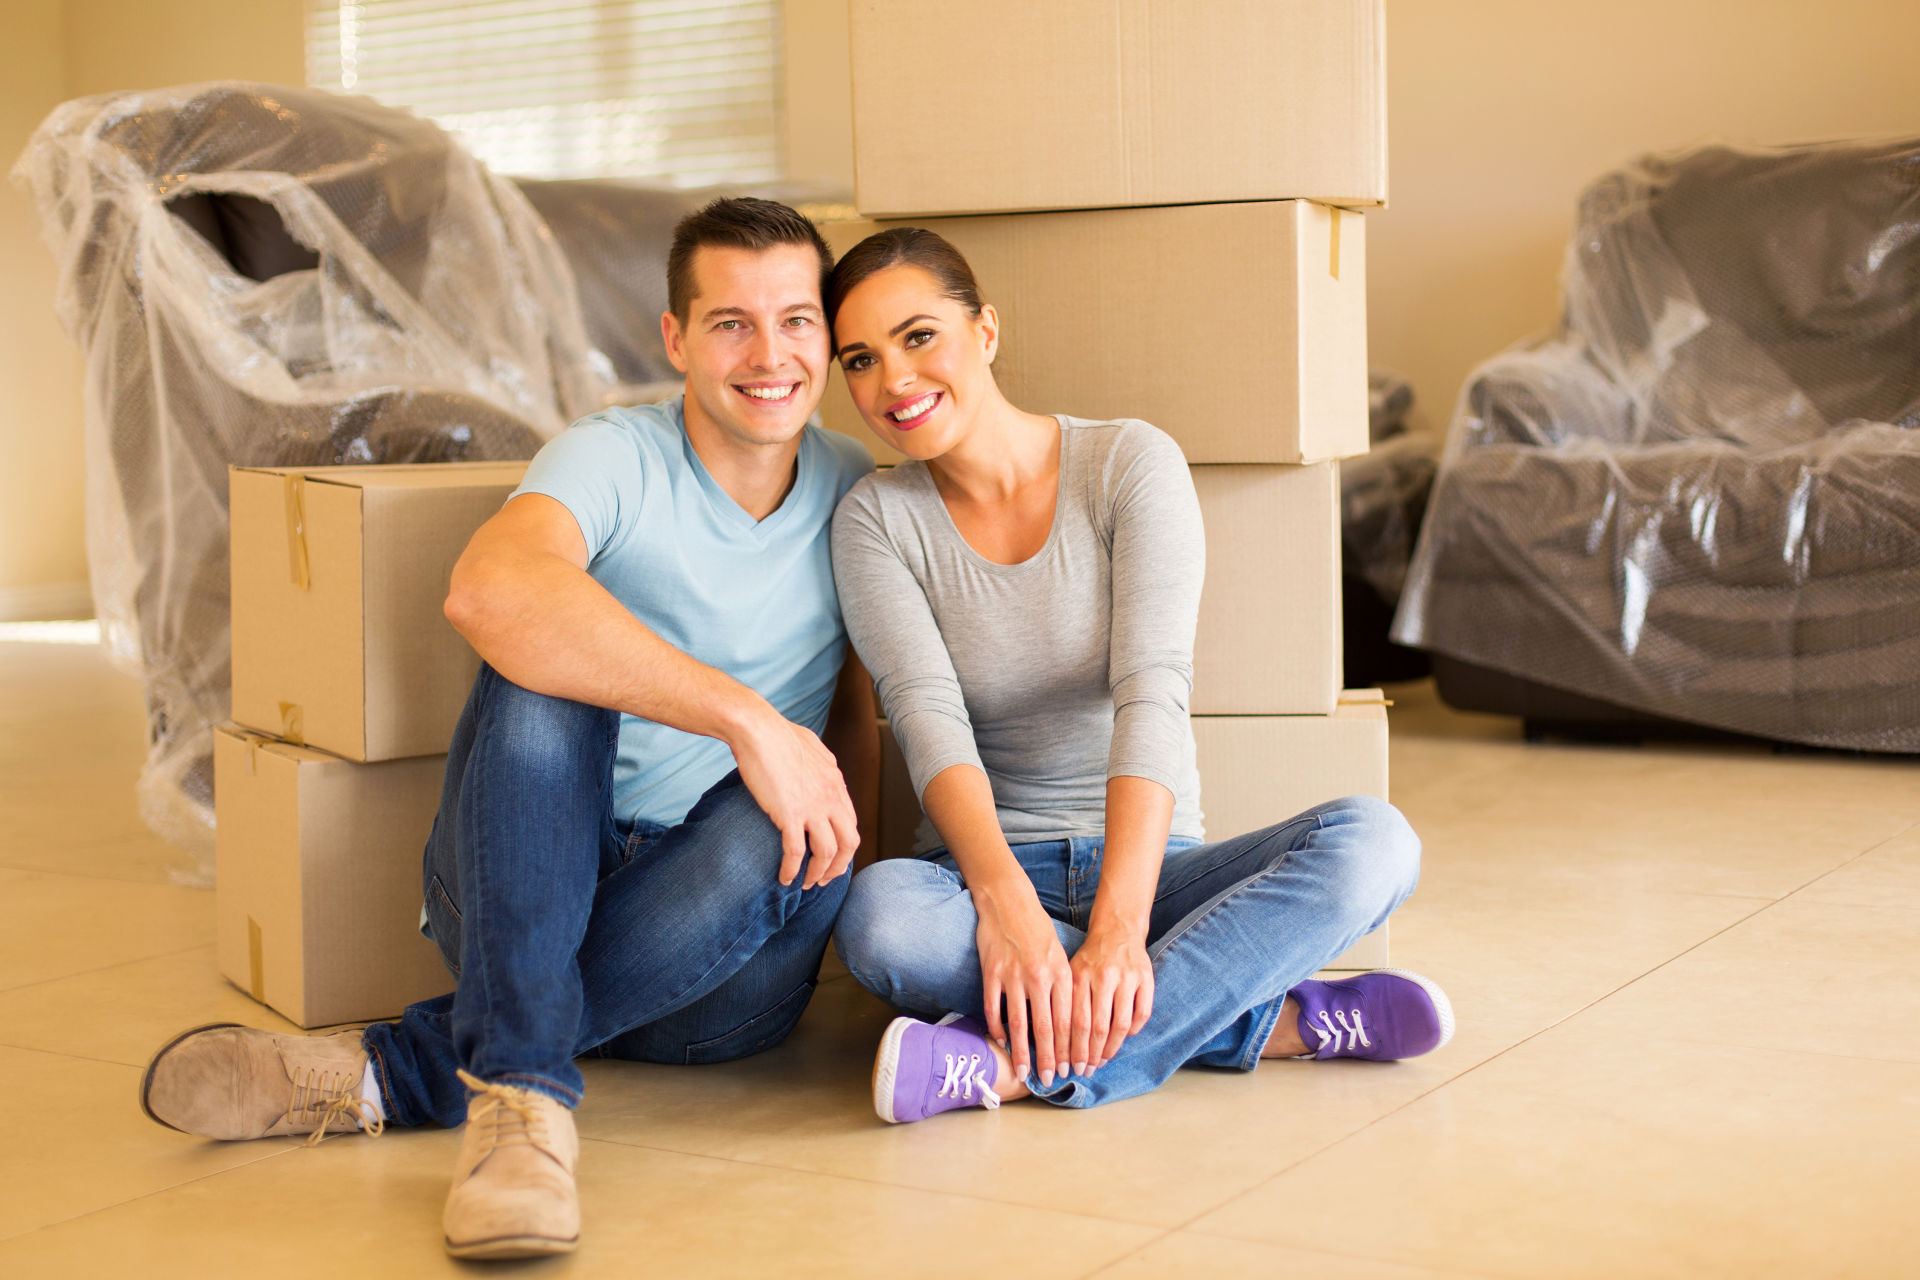 5 Tips for Buying a Home